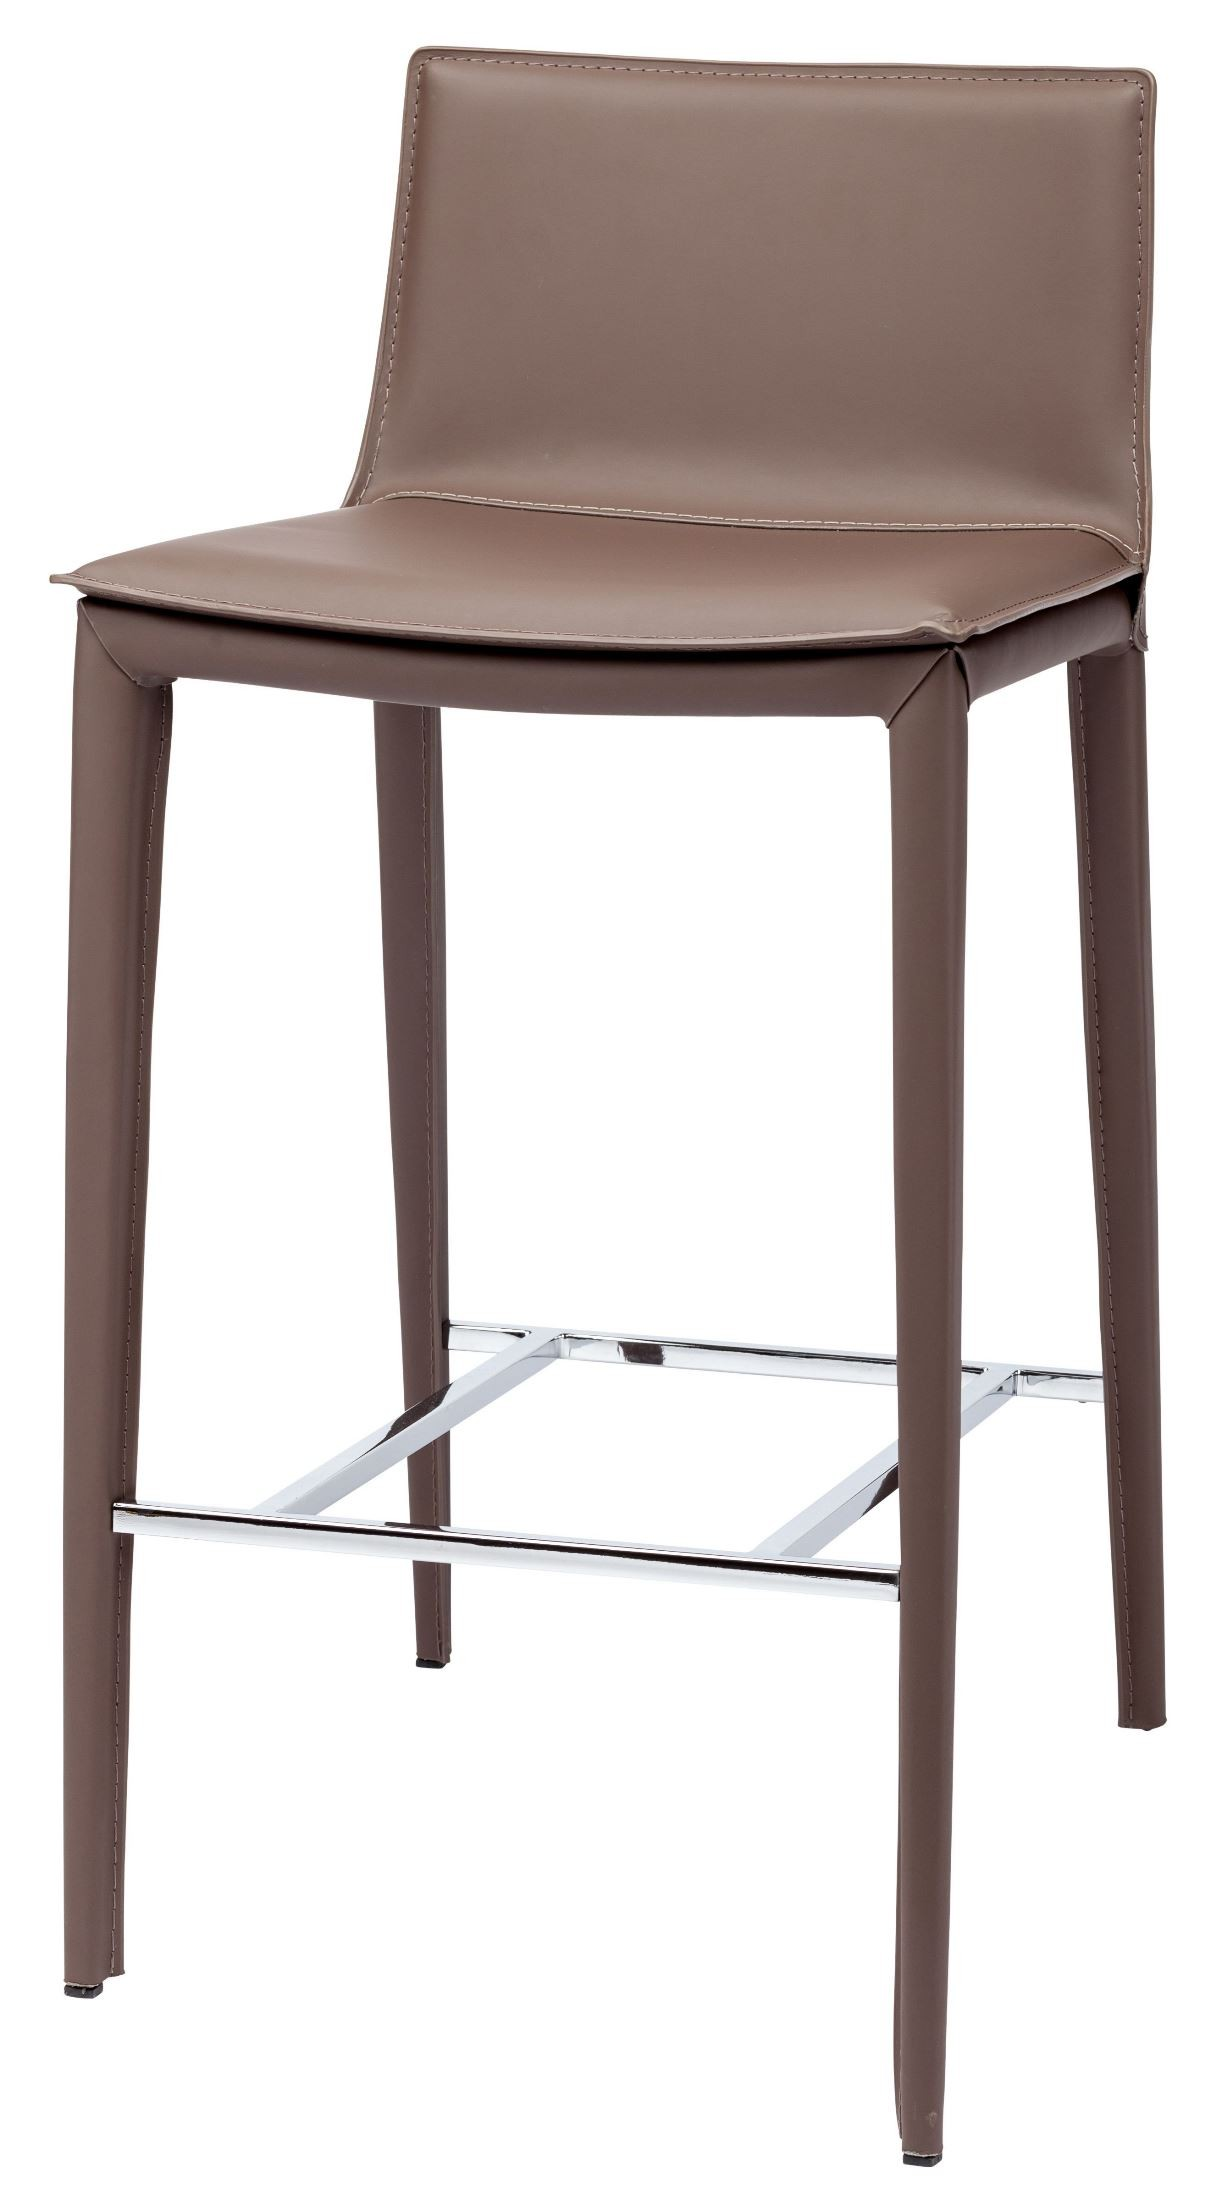 Palma Mink Leather Bar Stool From Nuevo Coleman Furniture